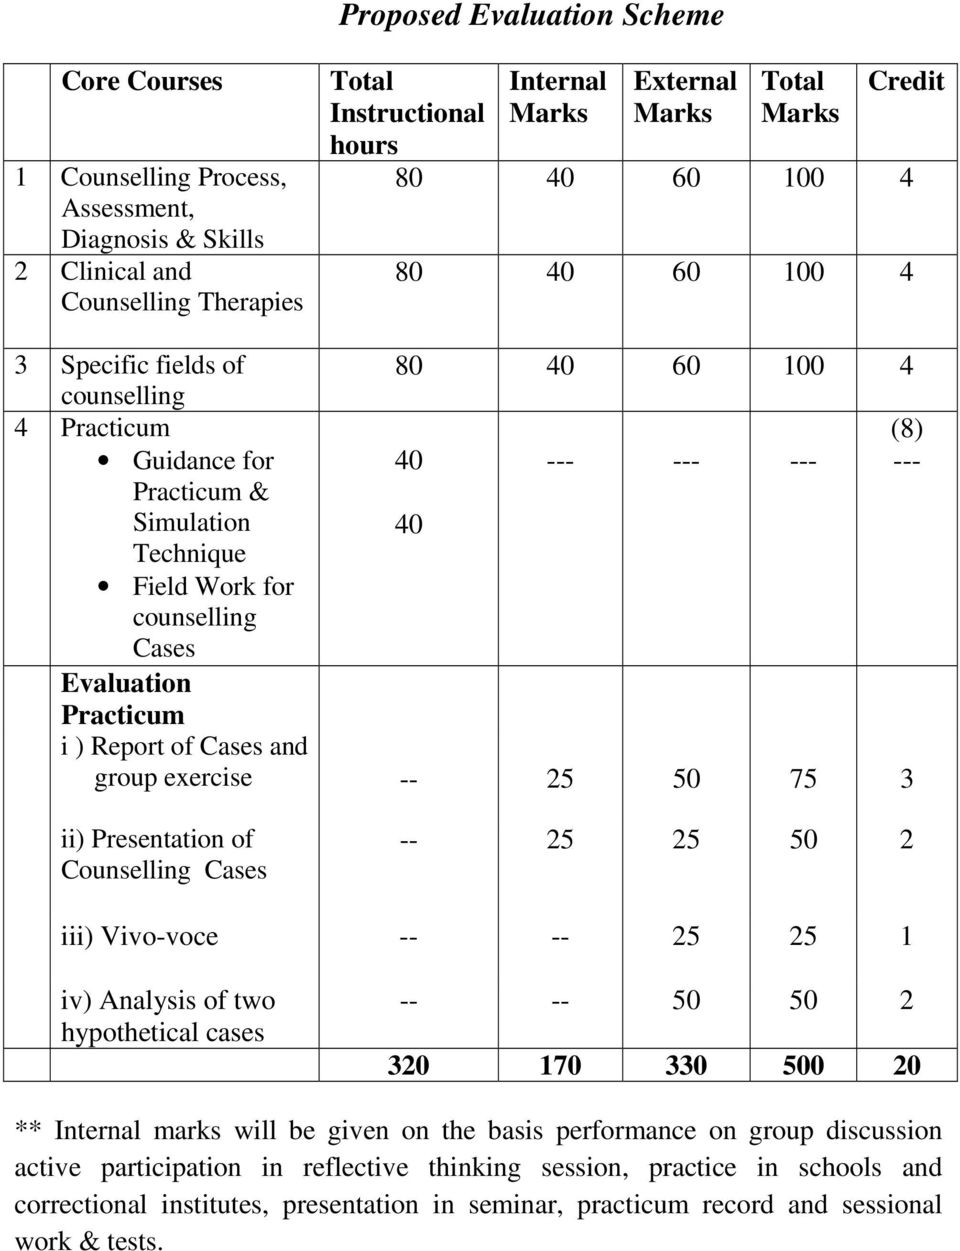 40 Evaluation Practicum i ) Report of Cases and group exercise -- 25 50 75 3 ii) Presentation of Counselling Cases -- 25 25 50 2 iii) Vivo-voce -- -- 25 25 1 iv) Analysis of two hypothetical cases --